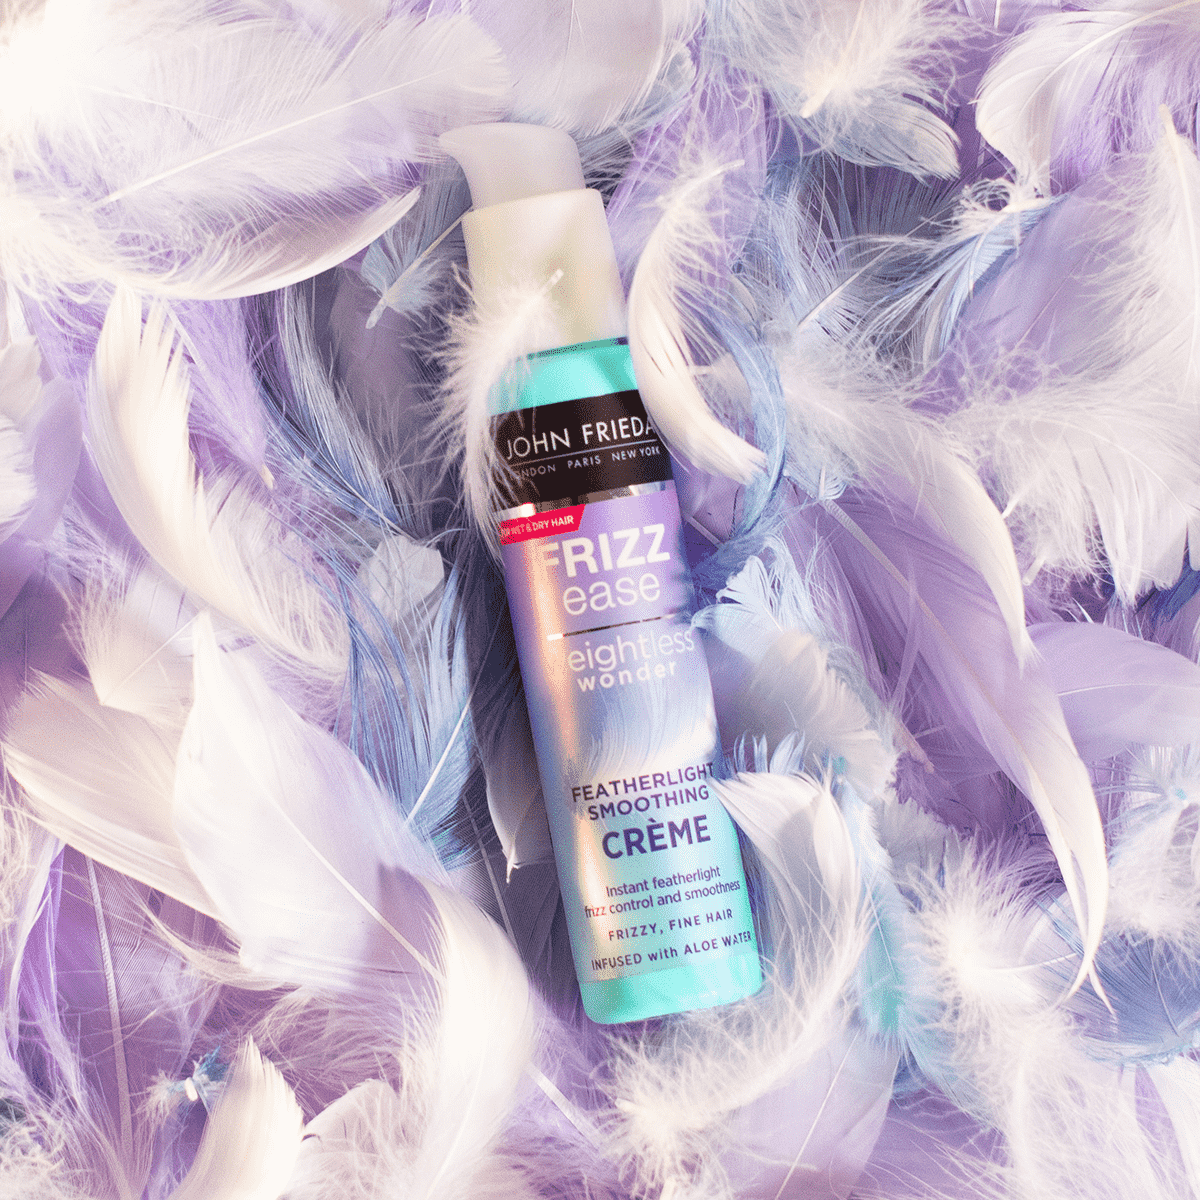 John Frieda creme surrounded by feathers